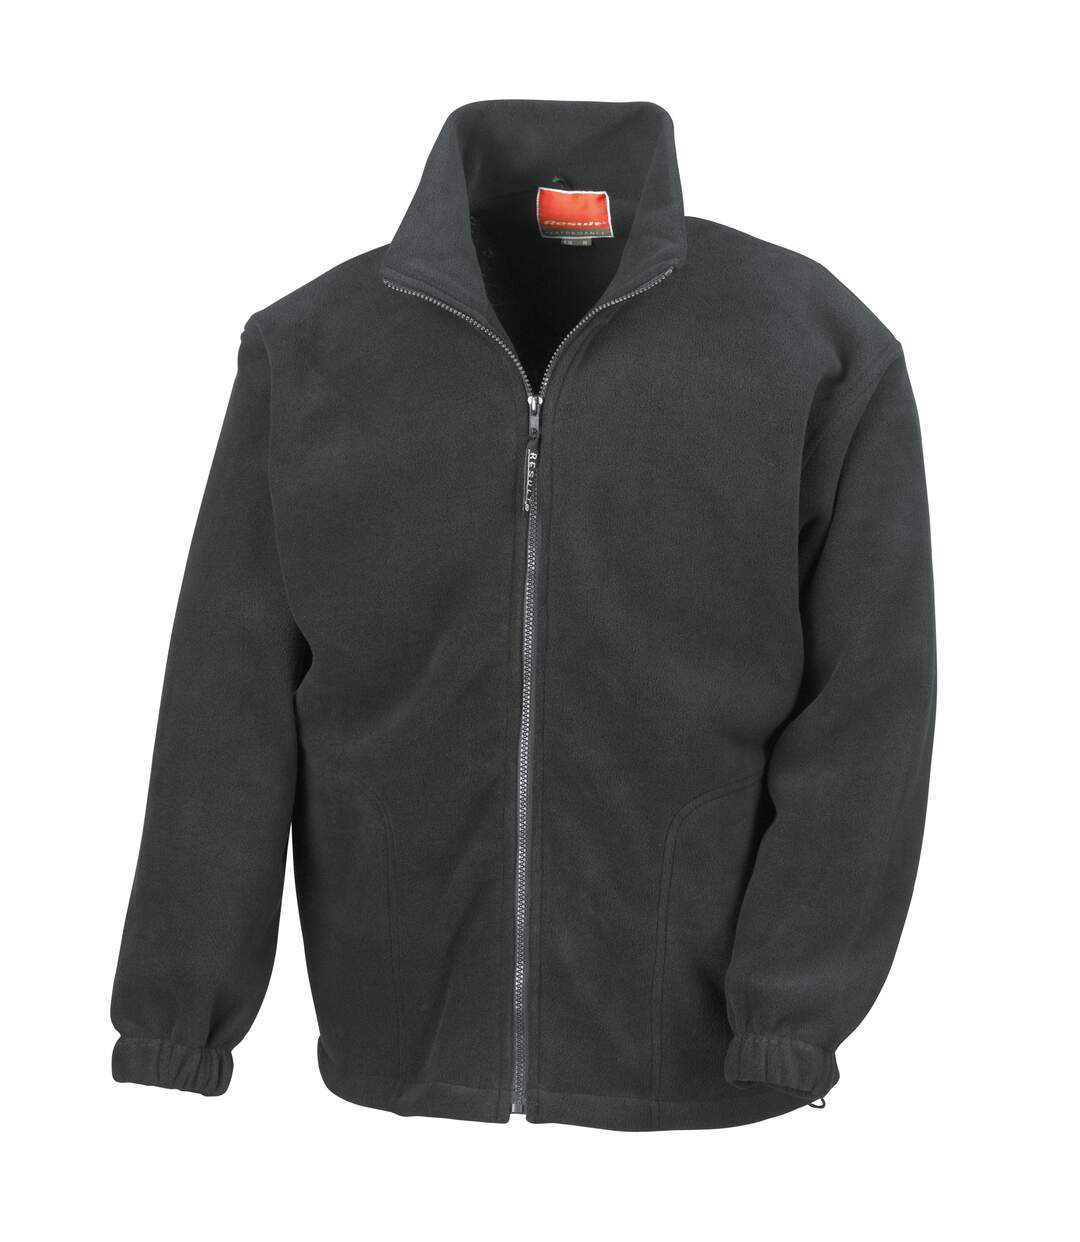 Result Mens Full Zip Active Fleece Anti Pilling Jacket (Black) - UTBC922